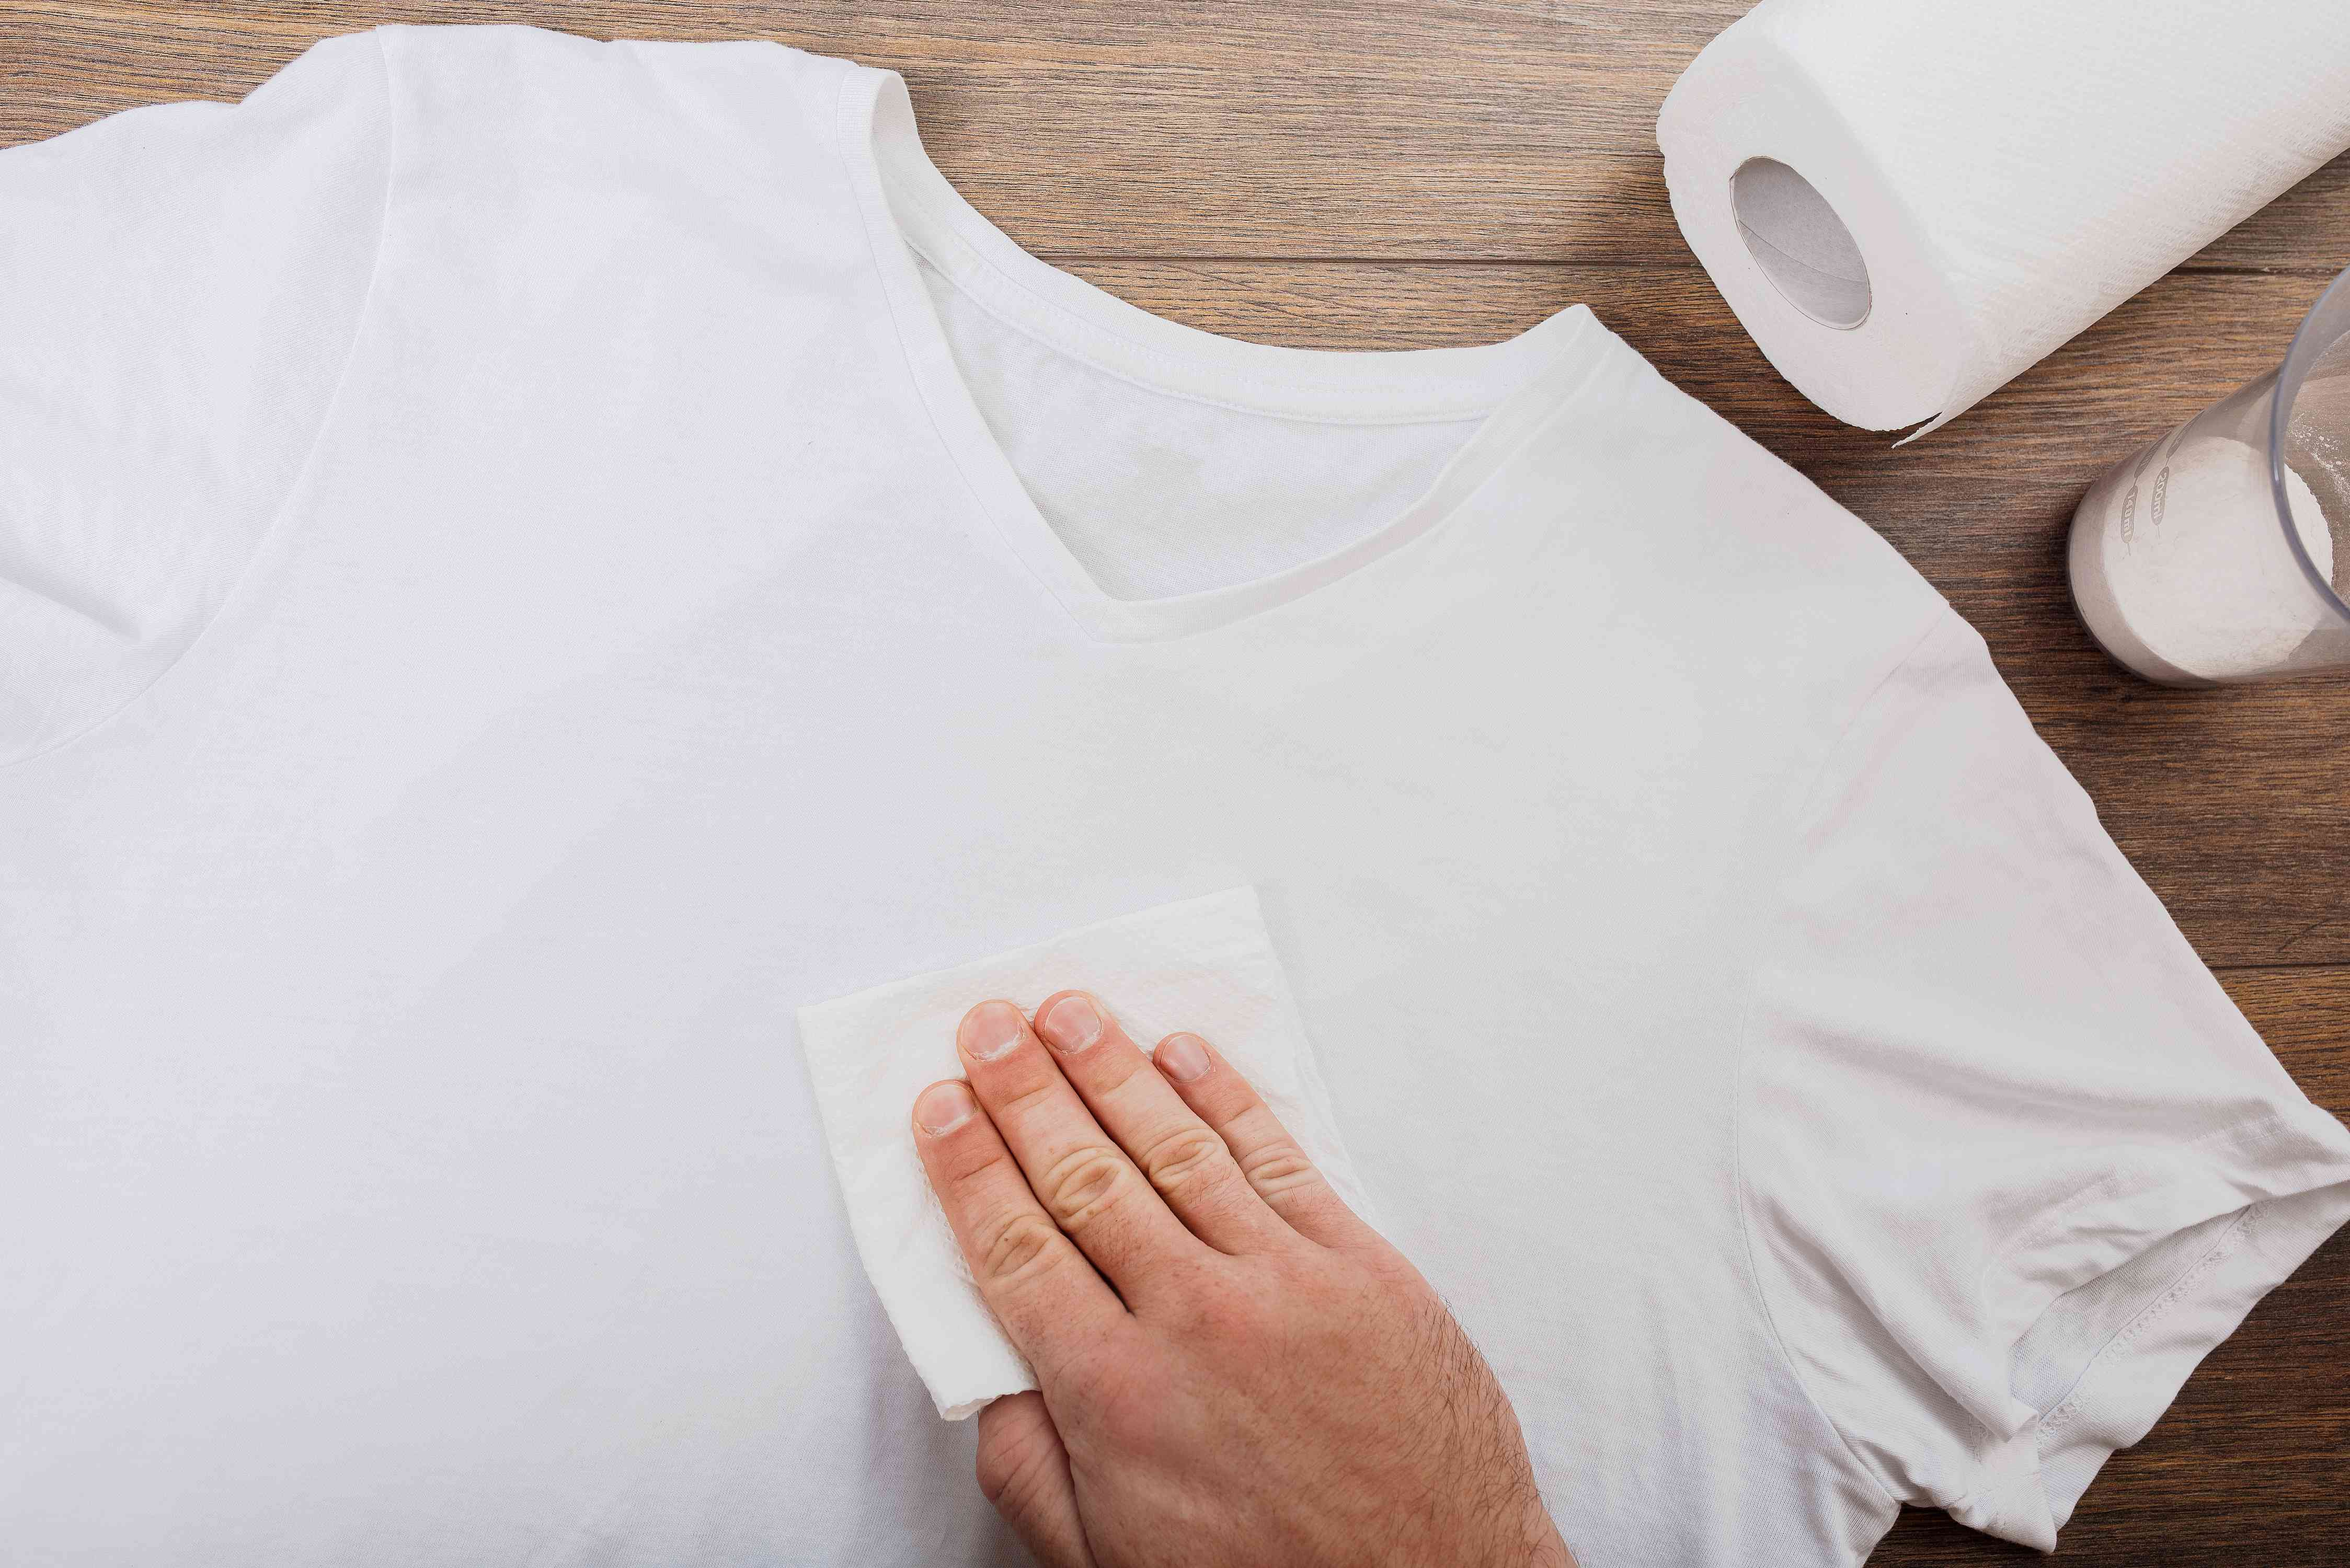 blotting a tshirt to pretreat a stain